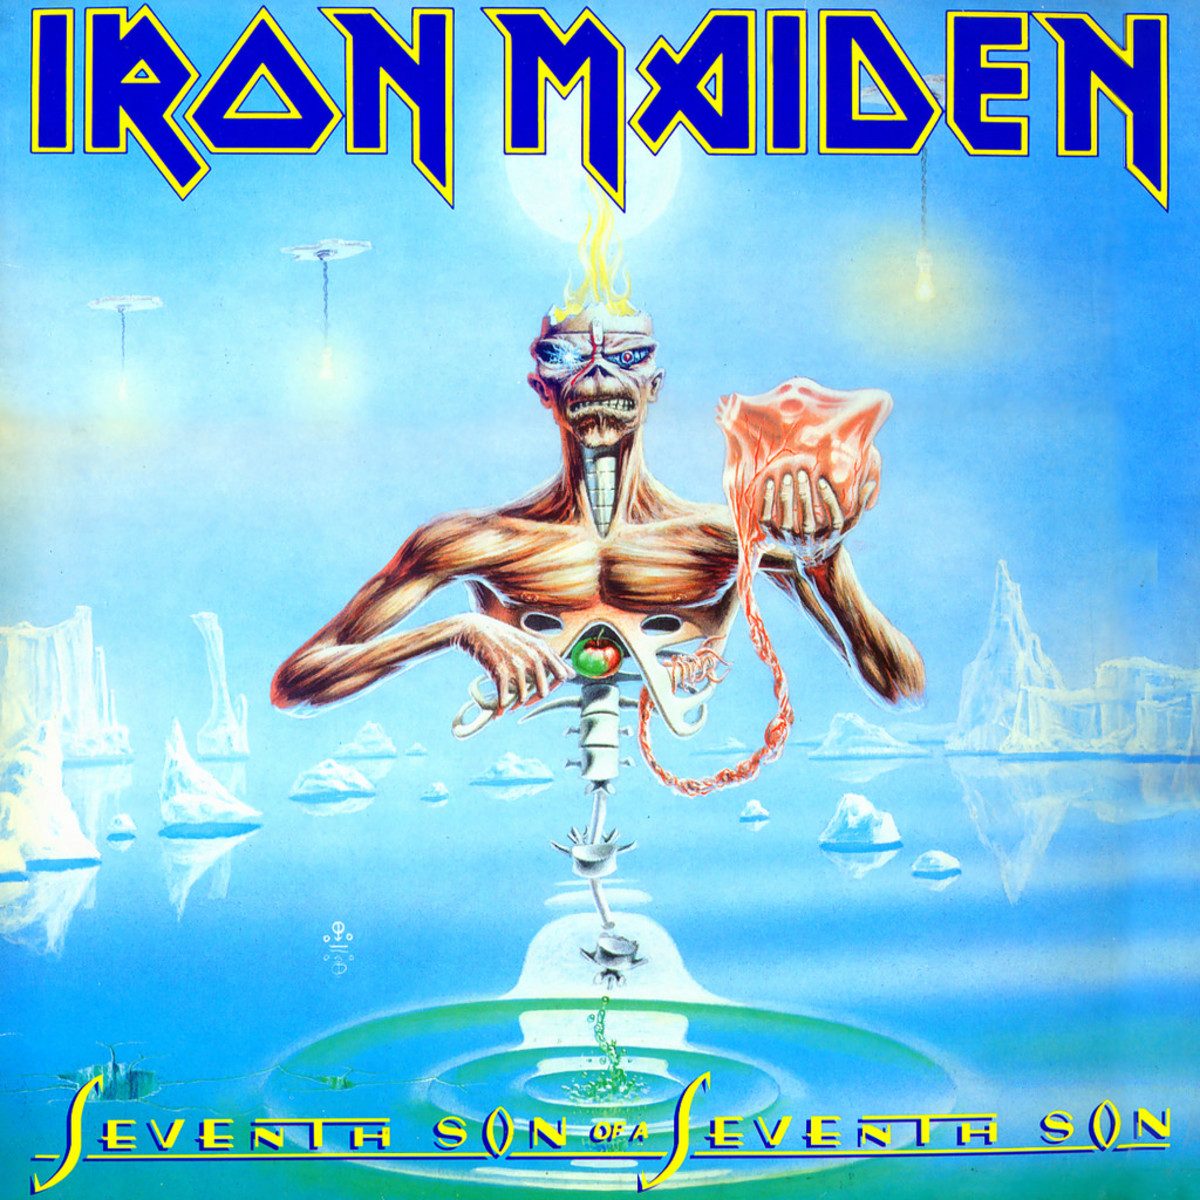 "Iron Maiden ""Seventh Son of a Seventh Son"" Capitol Records C1-90258 12"" Vinyl Record (1988)  Album Cover Art by Derek Riggs"